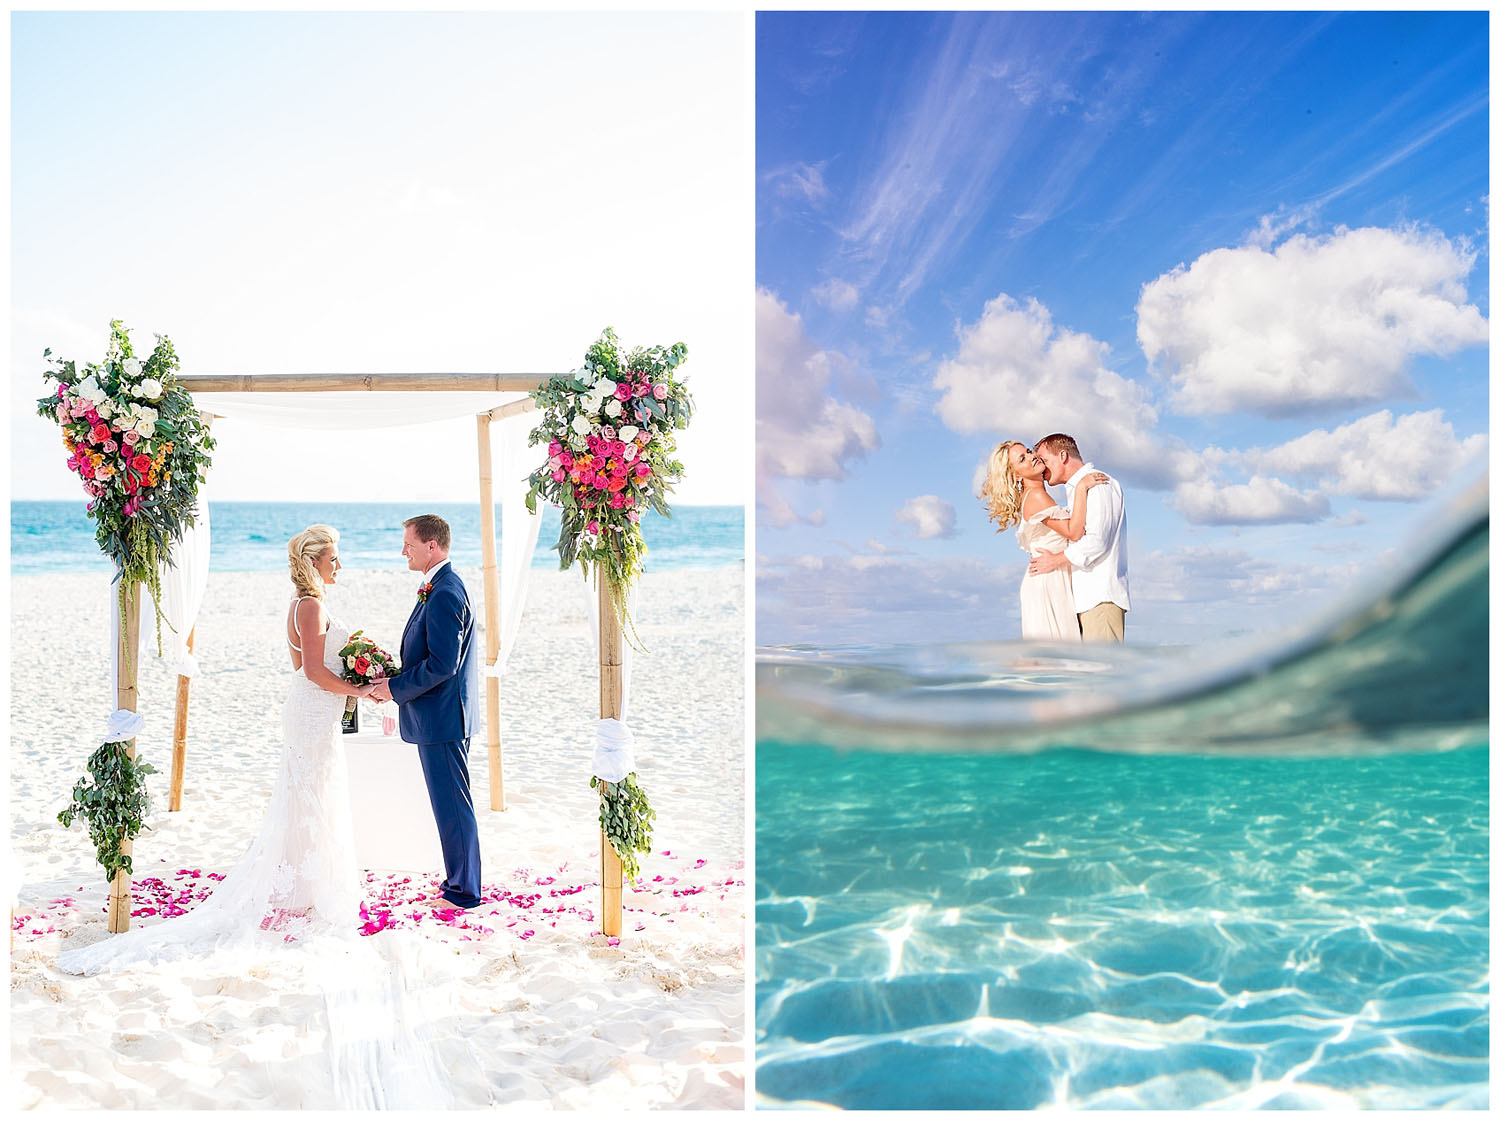 Isla-Mujeres-Wedding-Photos.jpg